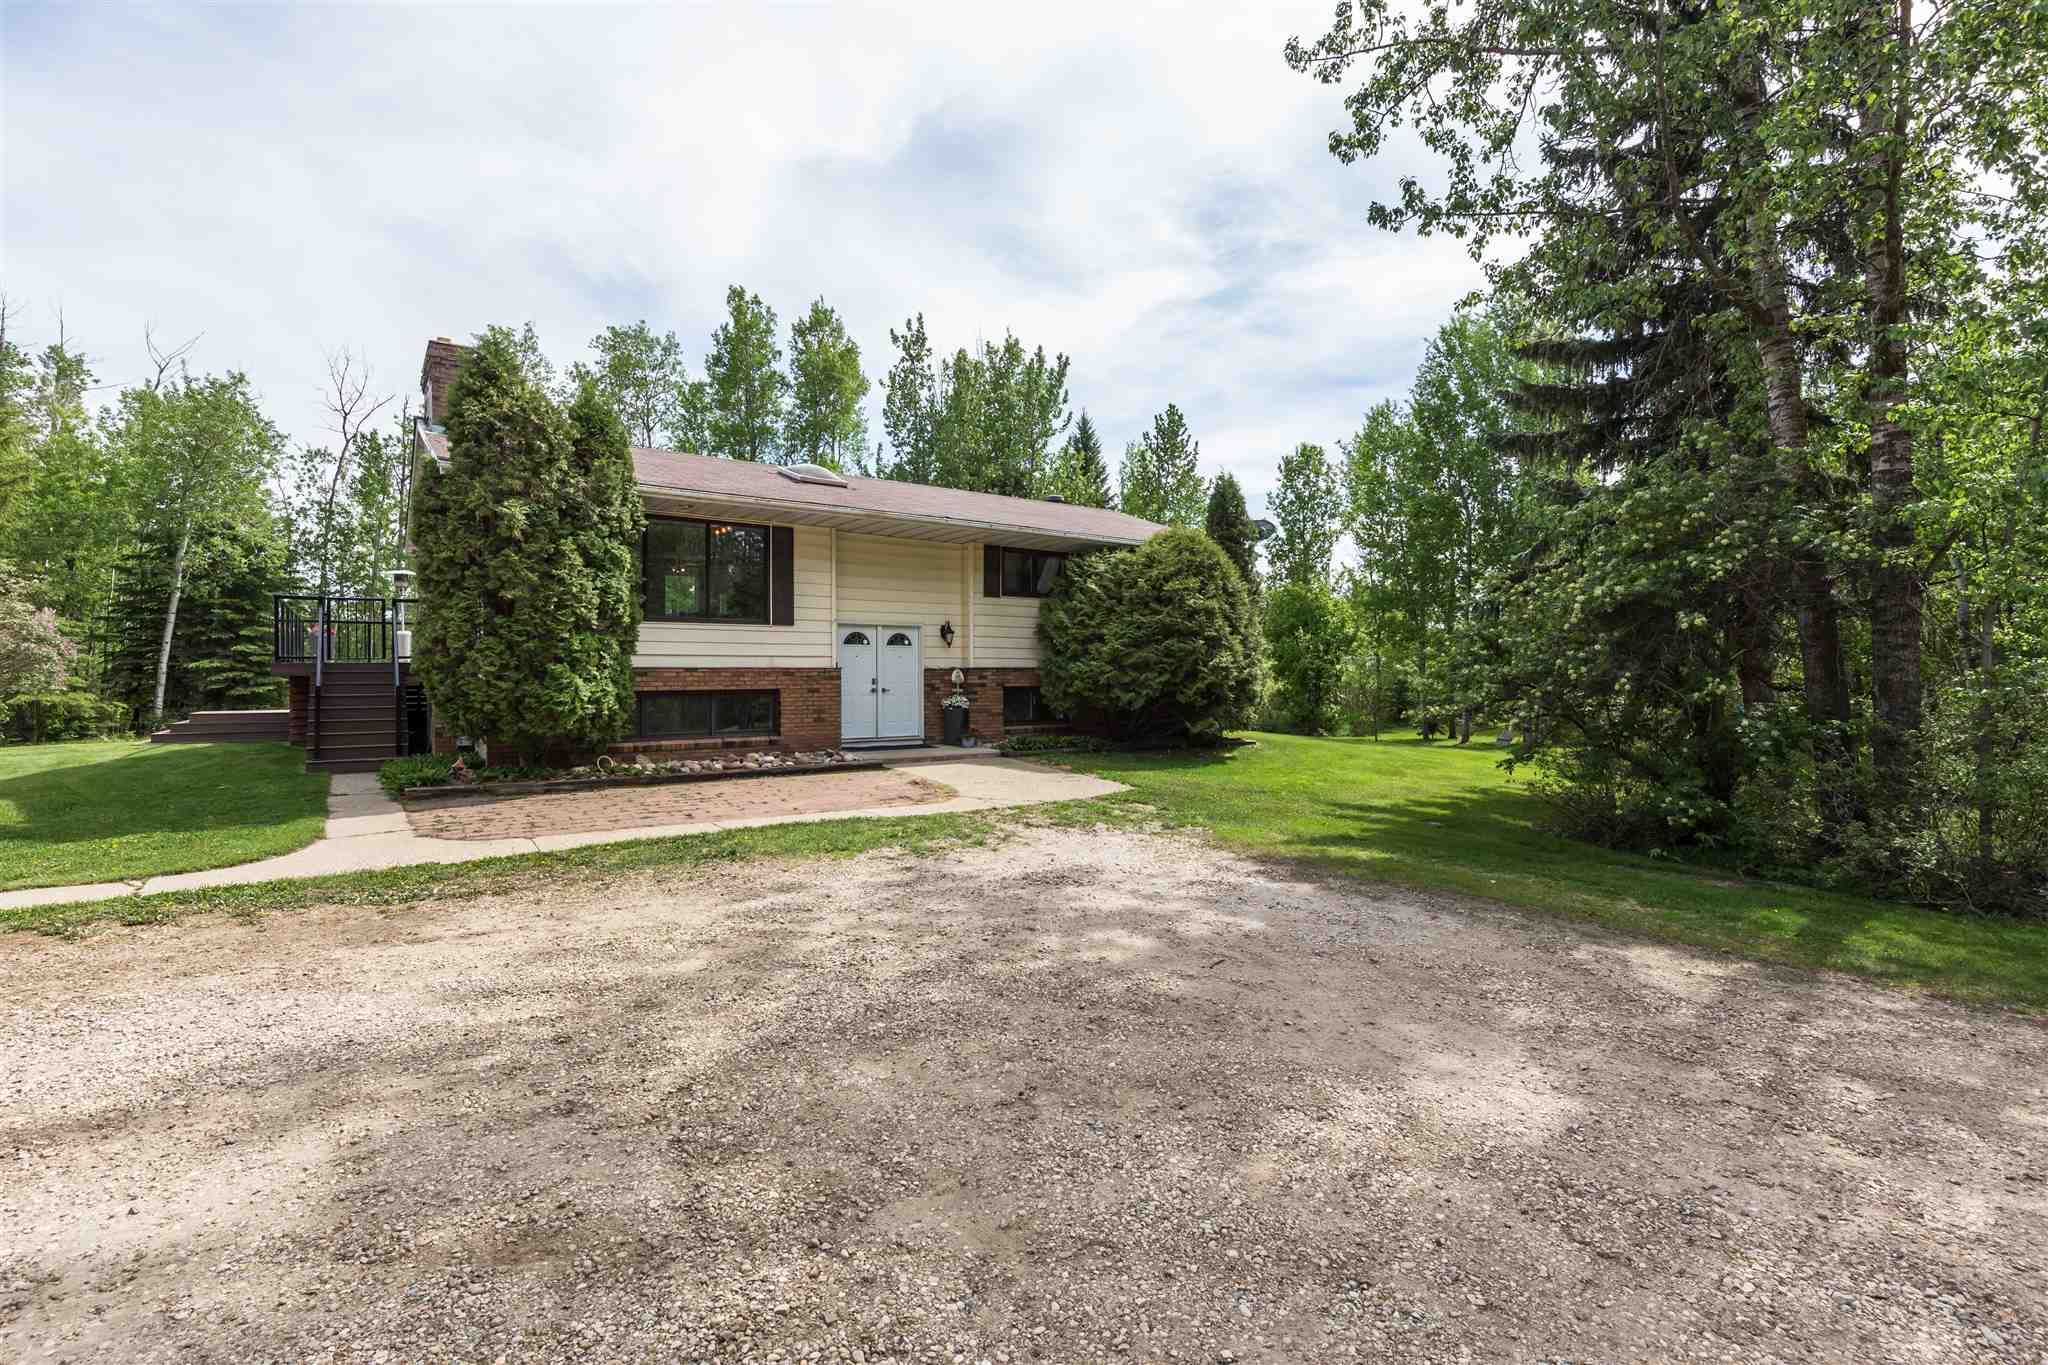 Main Photo: 18 51513 RGE RD 265: Rural Parkland County House for sale : MLS®# E4247721